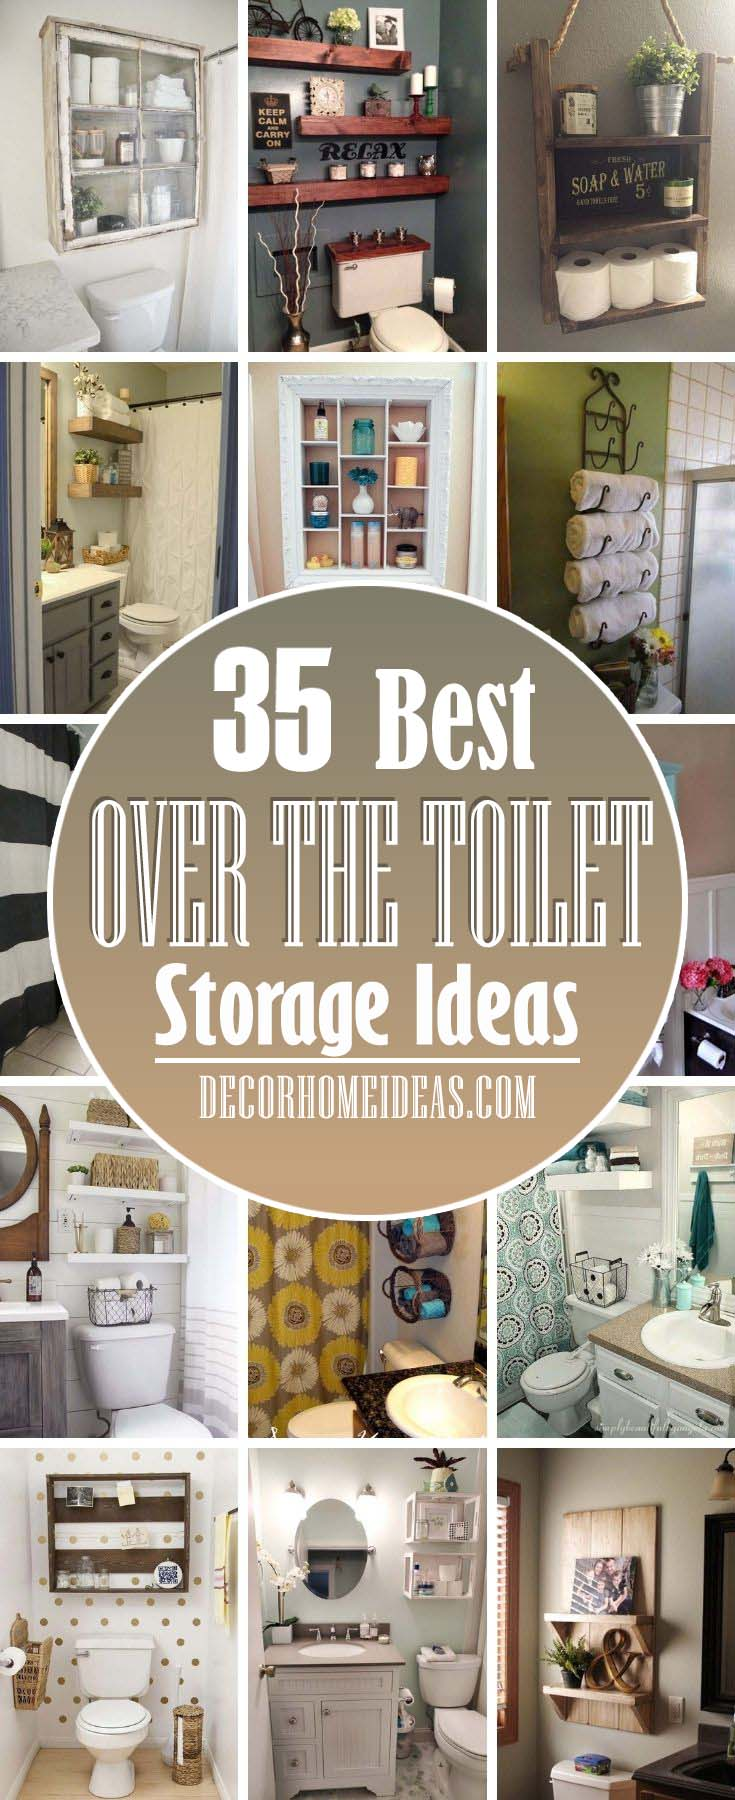 Best Over The Toilet Storage Ideas. Running short of storage space in bathroom? These 30+ over the toilet storage ideas are simply amazing and will help you add more storage no matter the size of your bathroom. Perfect for organizing a bathroom, these are the best over the toilet storage solutions. #decorhomeideas